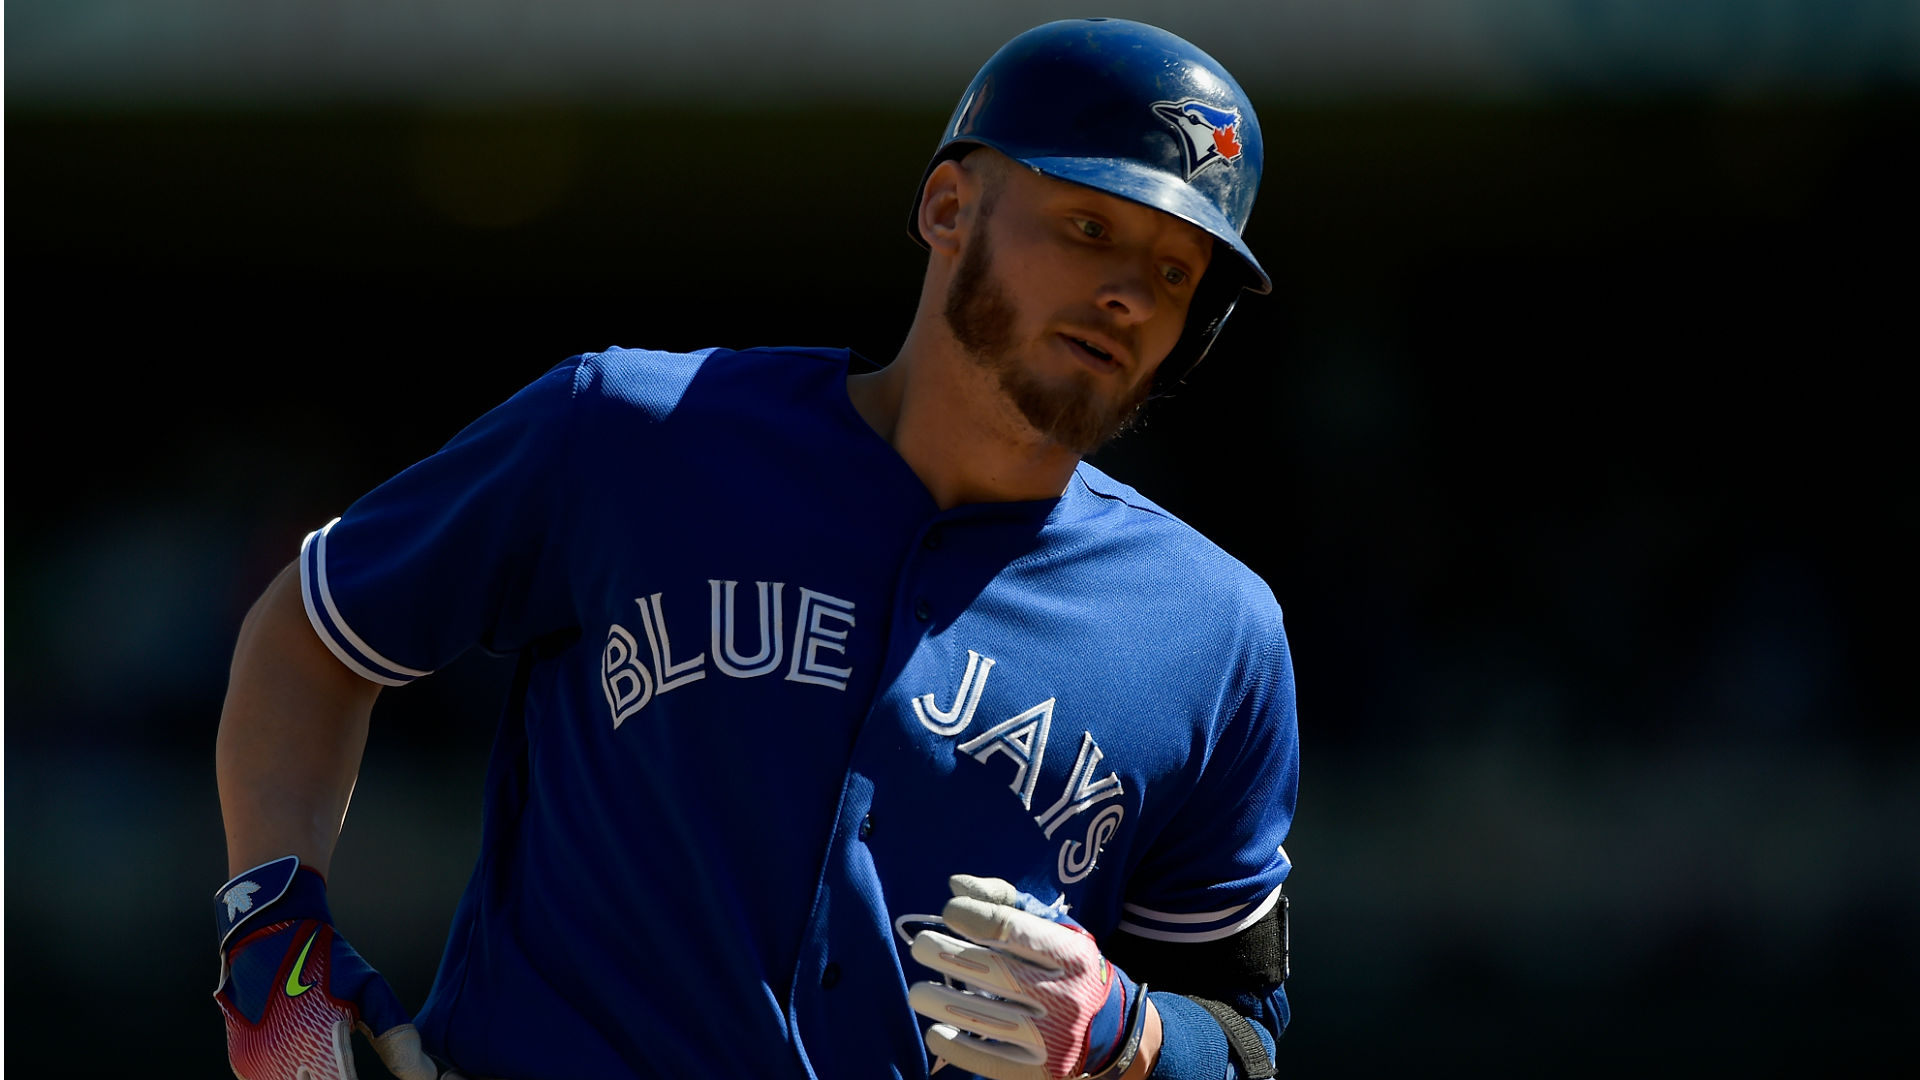 MLB trade rumors: Josh Donaldson likely on the move from Blue Jays